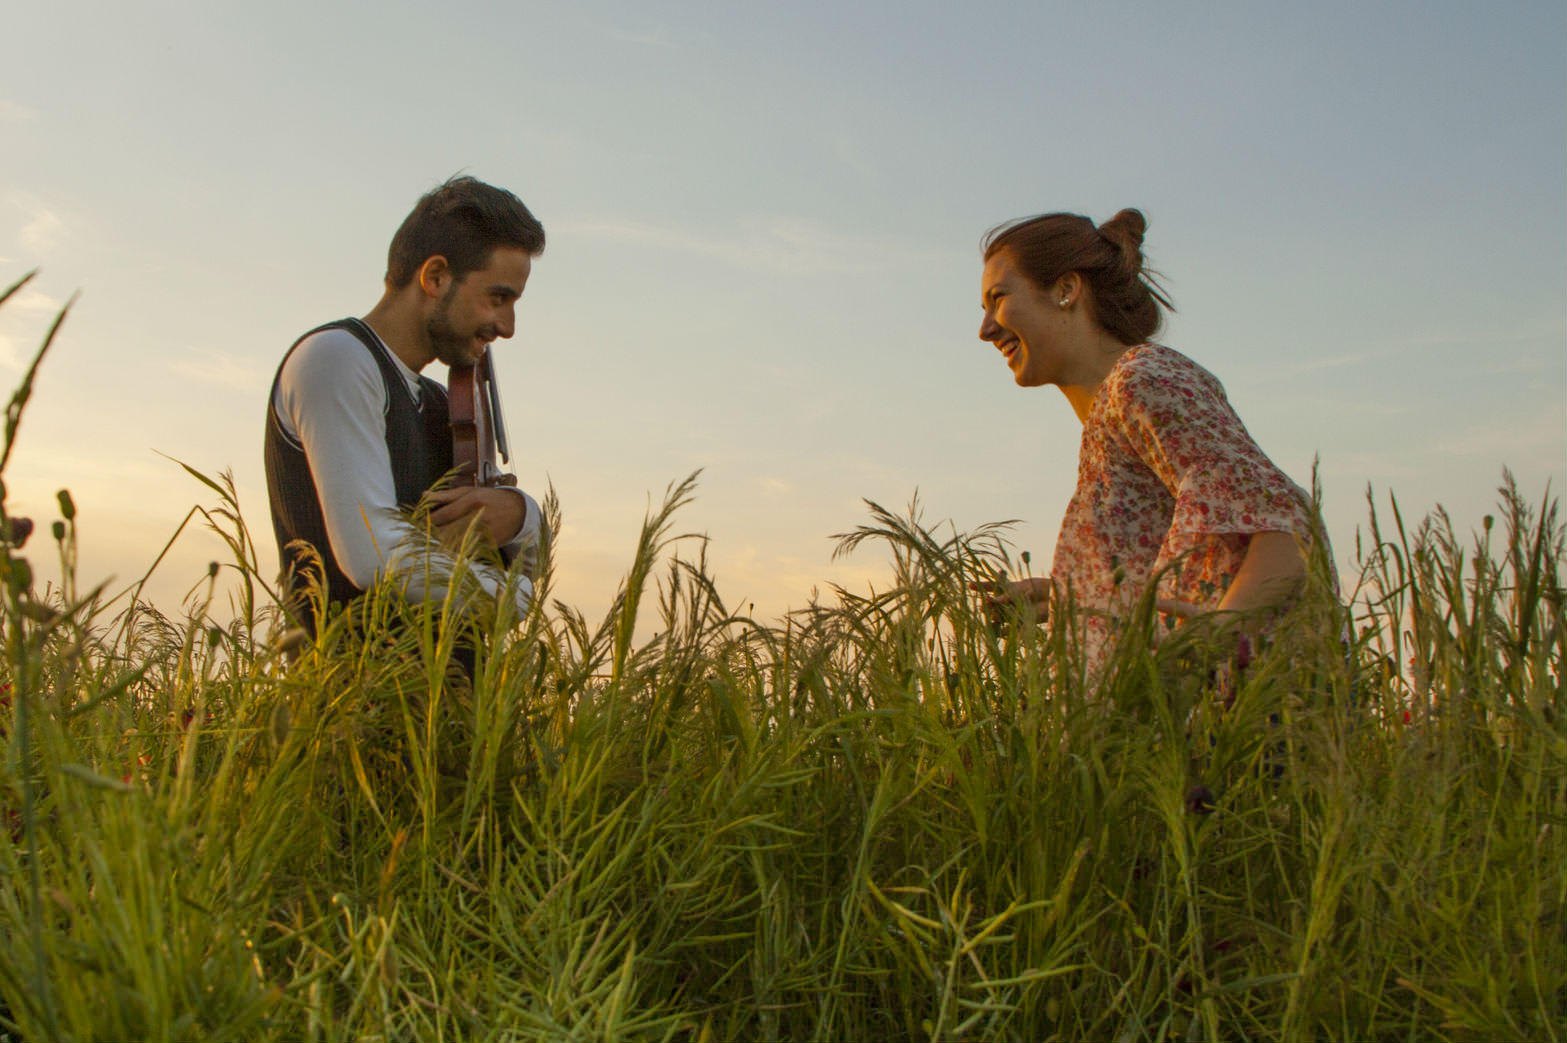 Two people talking in a meadow (Getty images/SandraKavas)